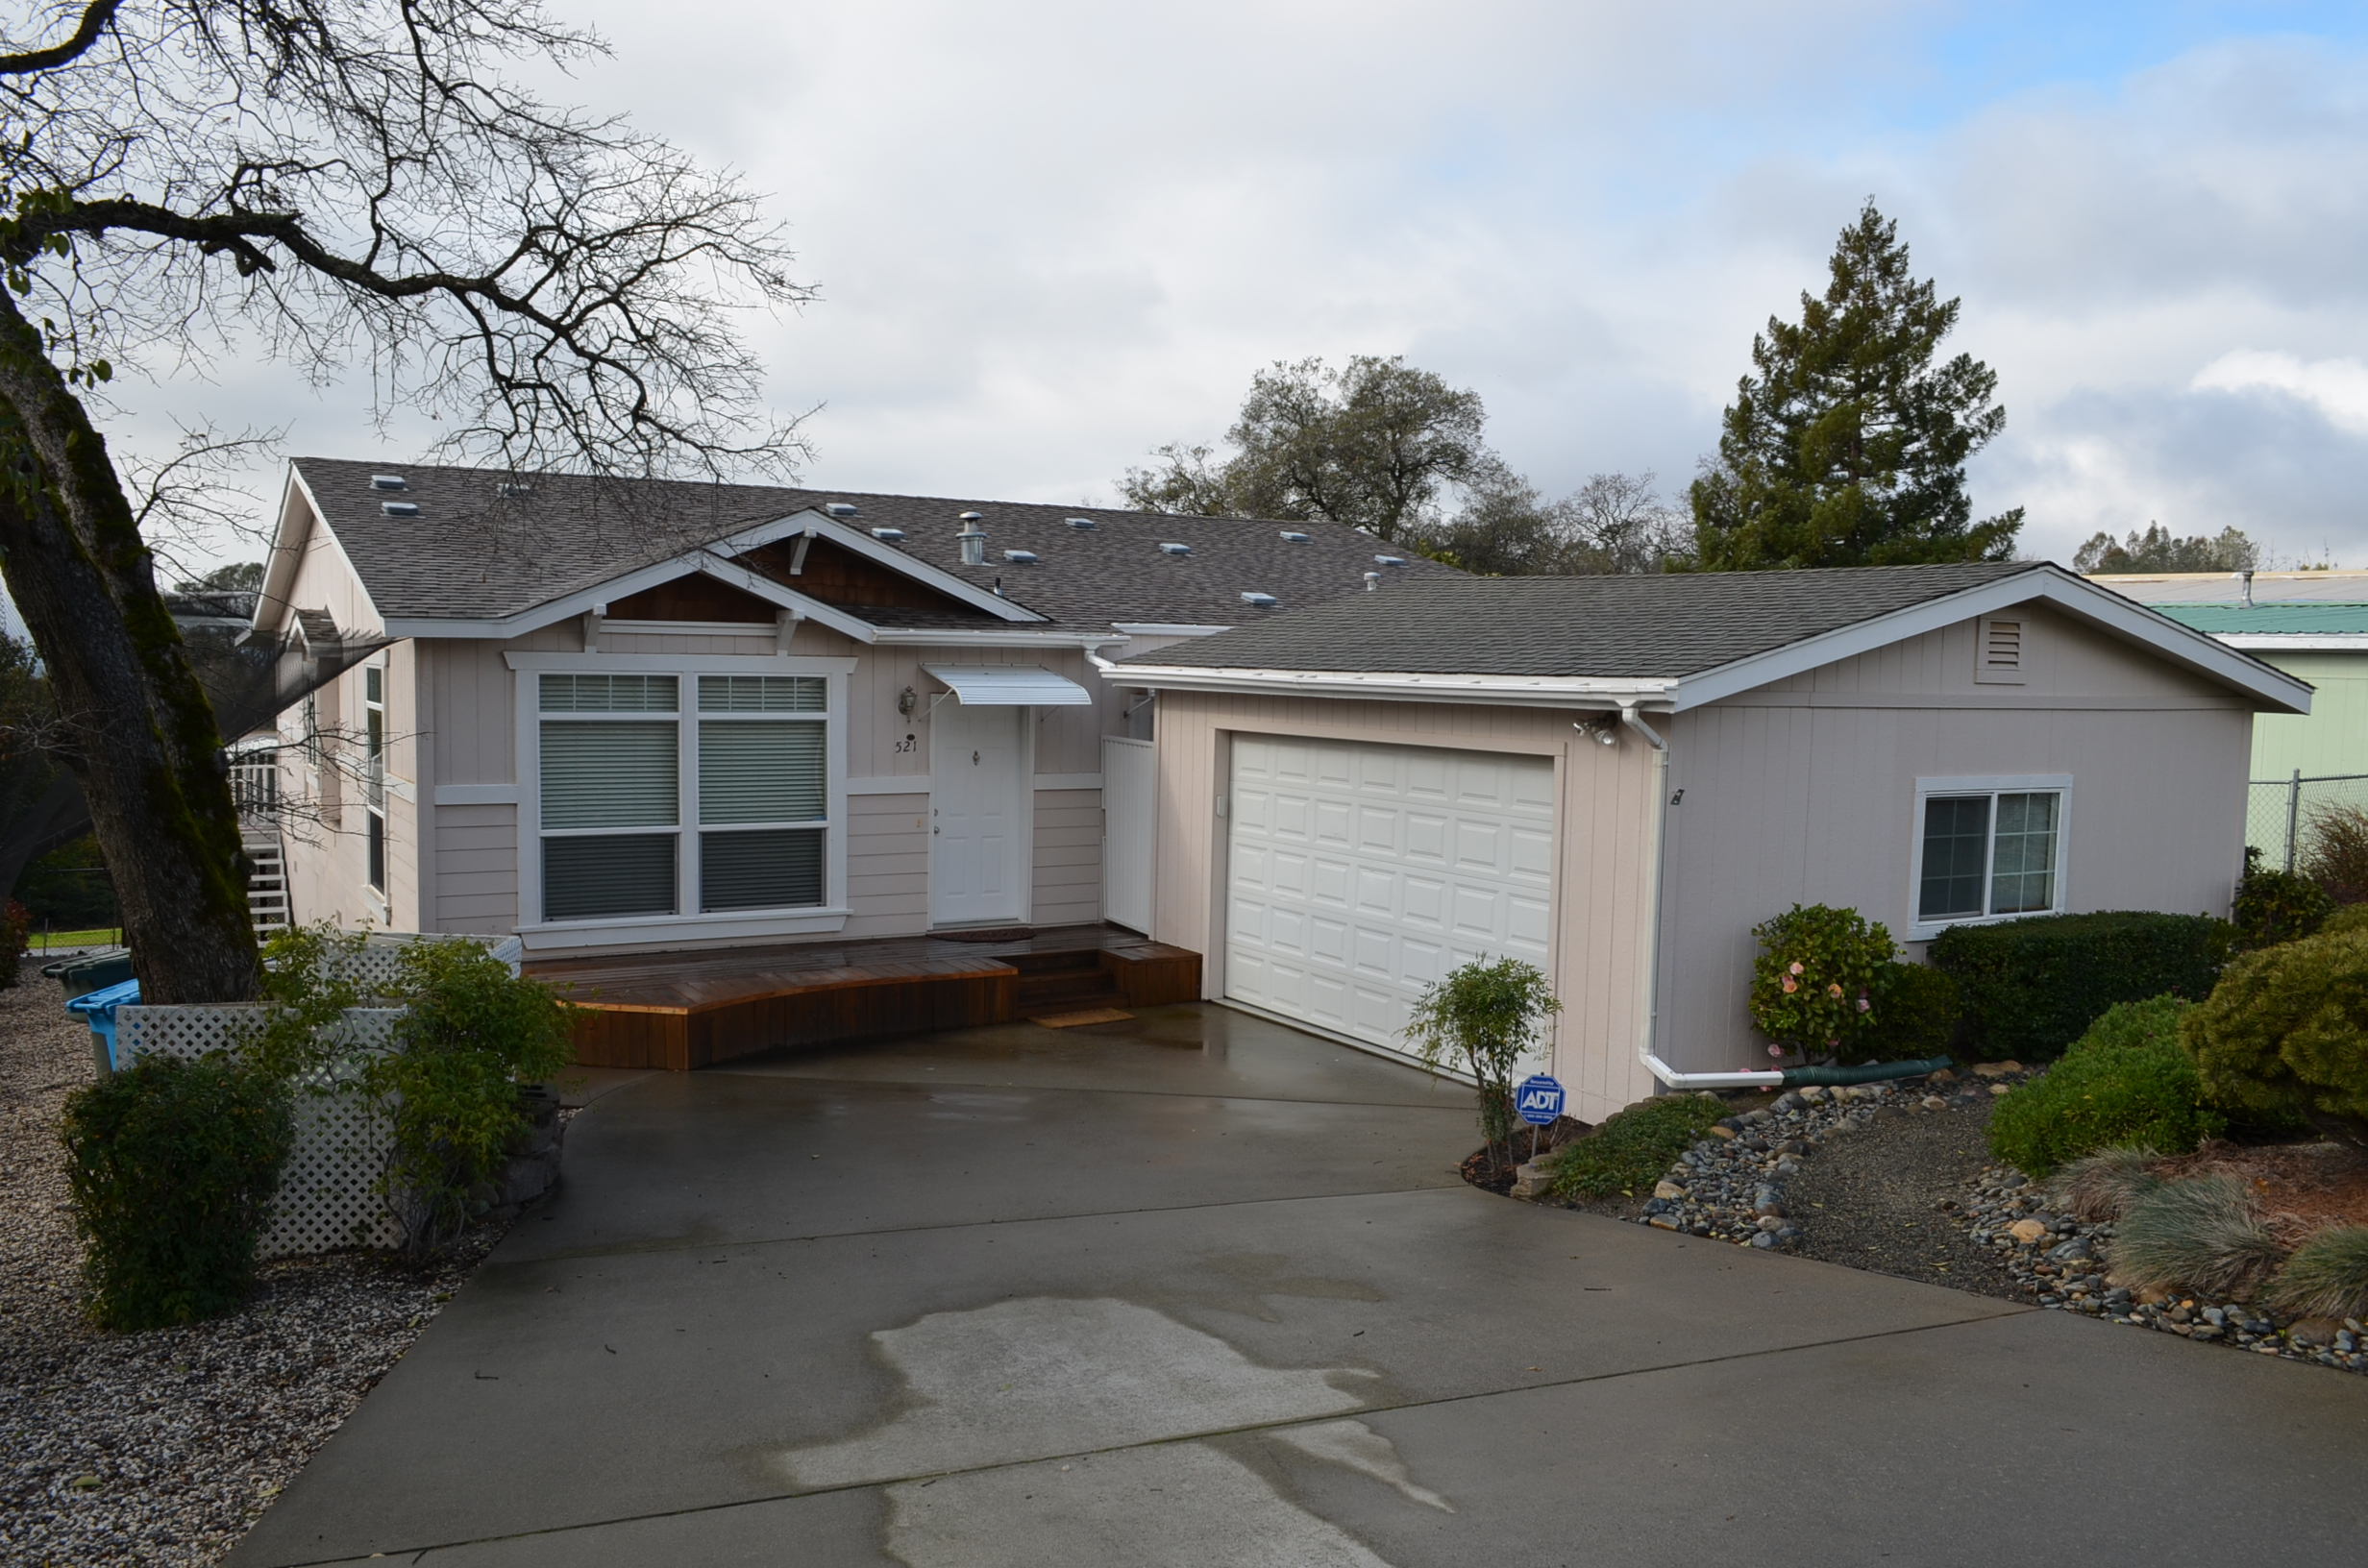 521 Silver Leaf Dr., Oroville, California 95966